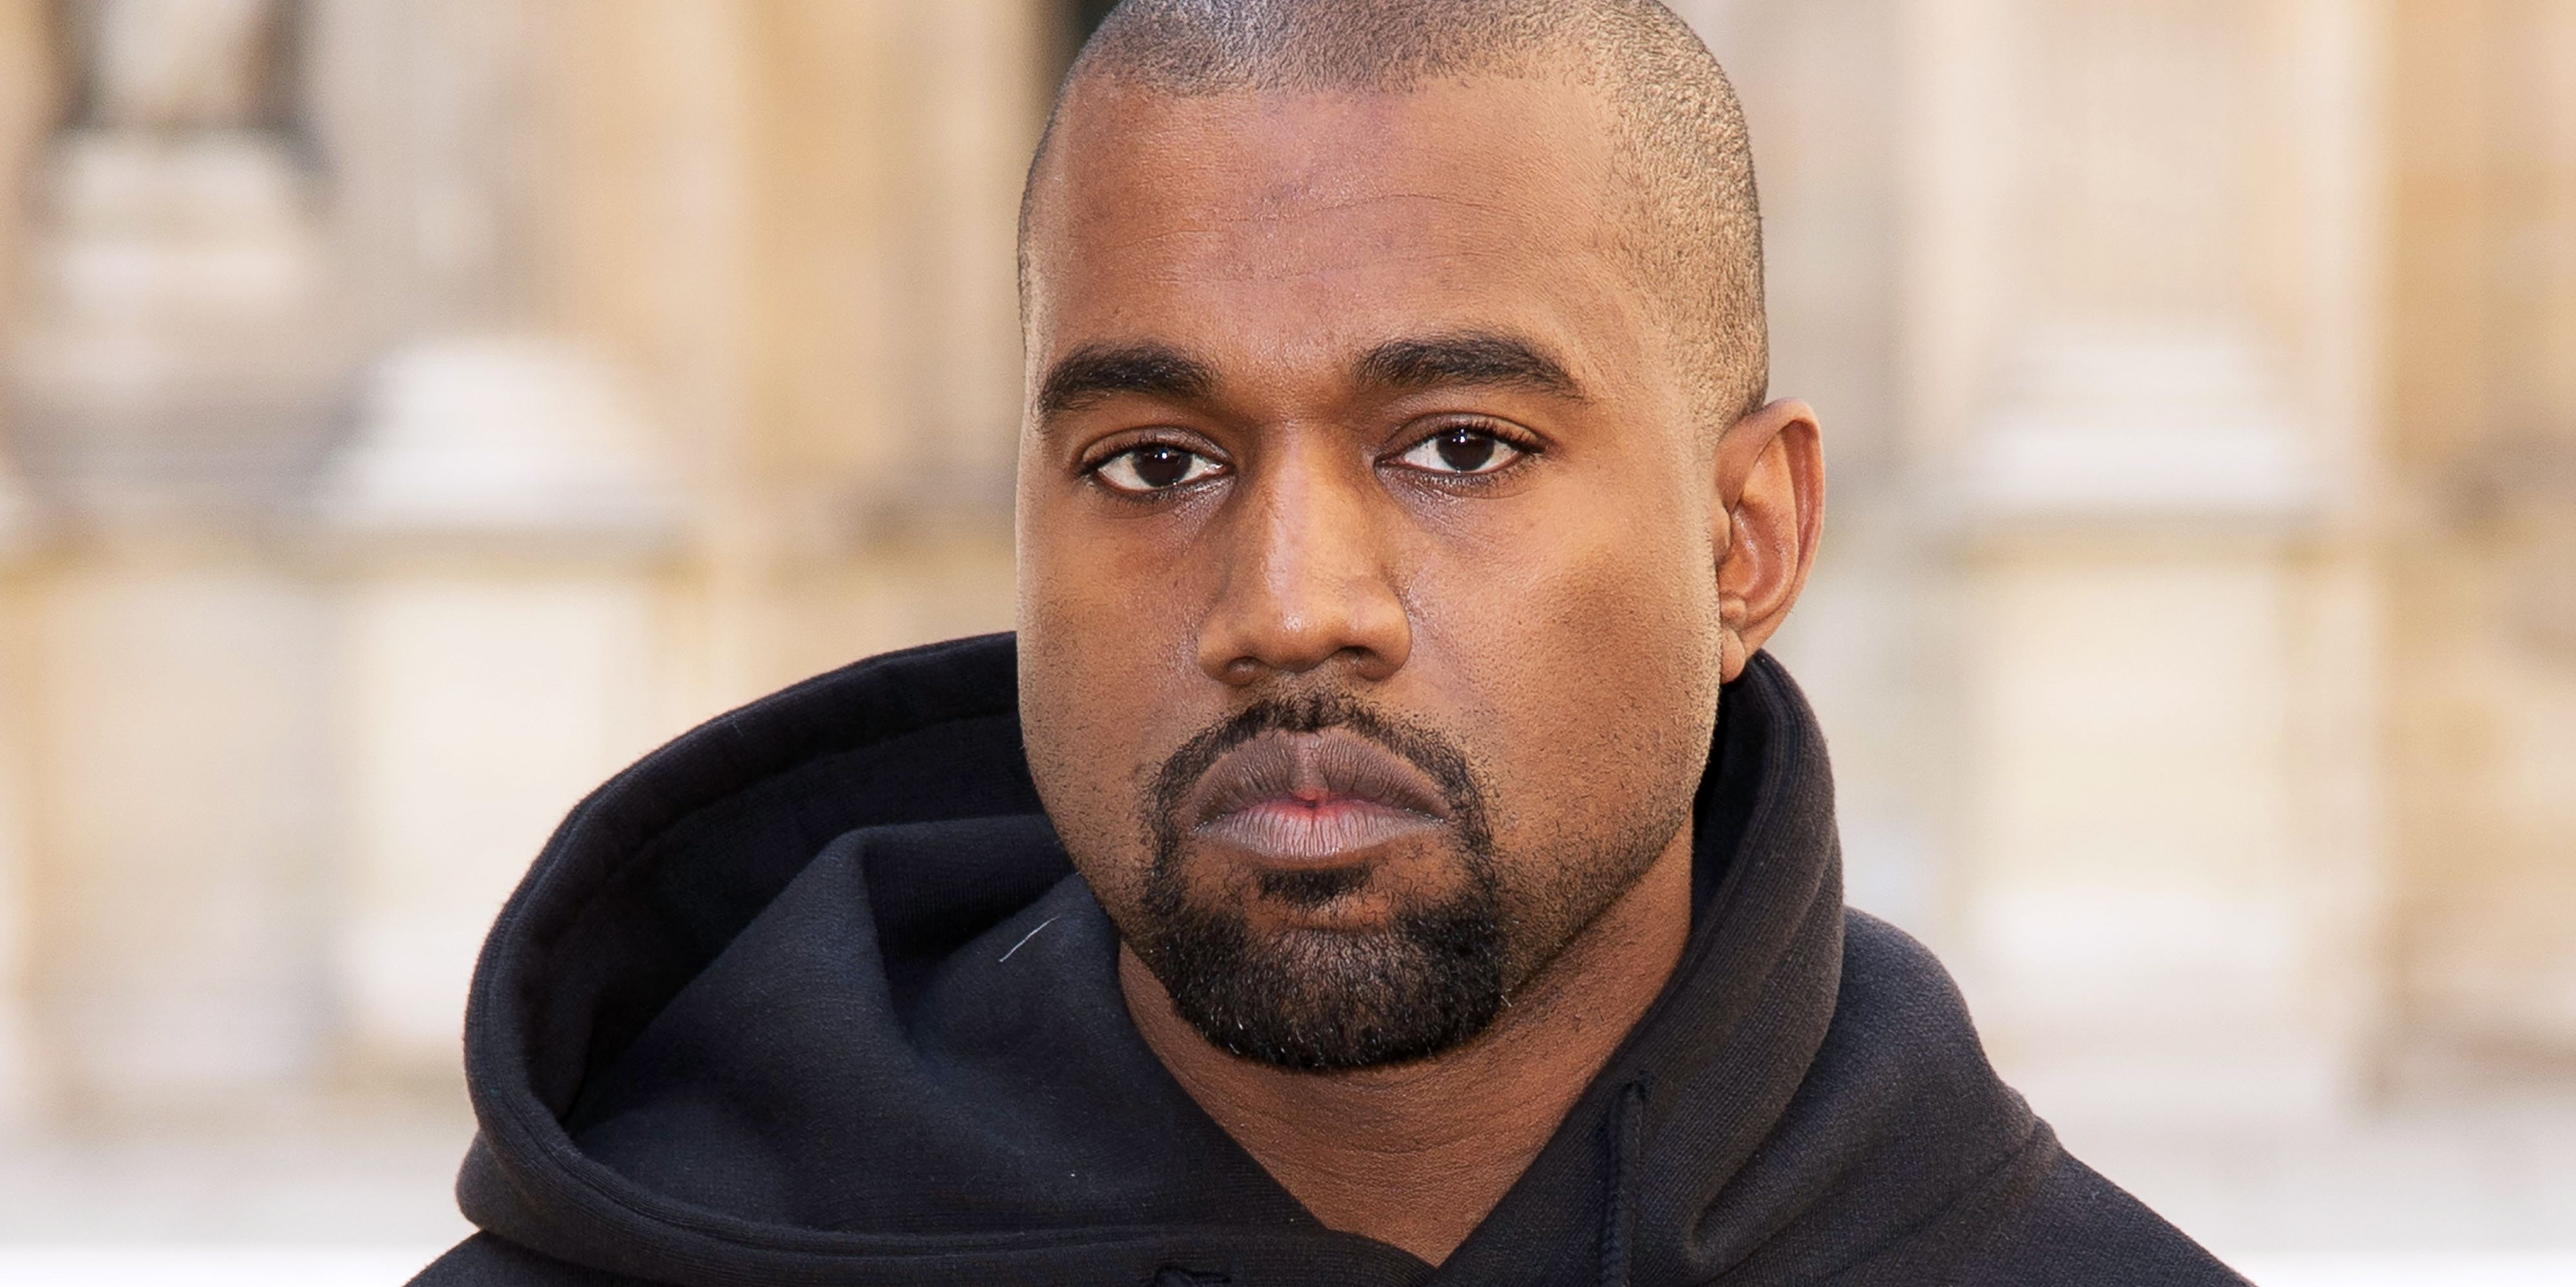 d8c743c53fc7d Kanye West s New Yeezy Sneaker Campaign Pictures Show a Naked Kim ...